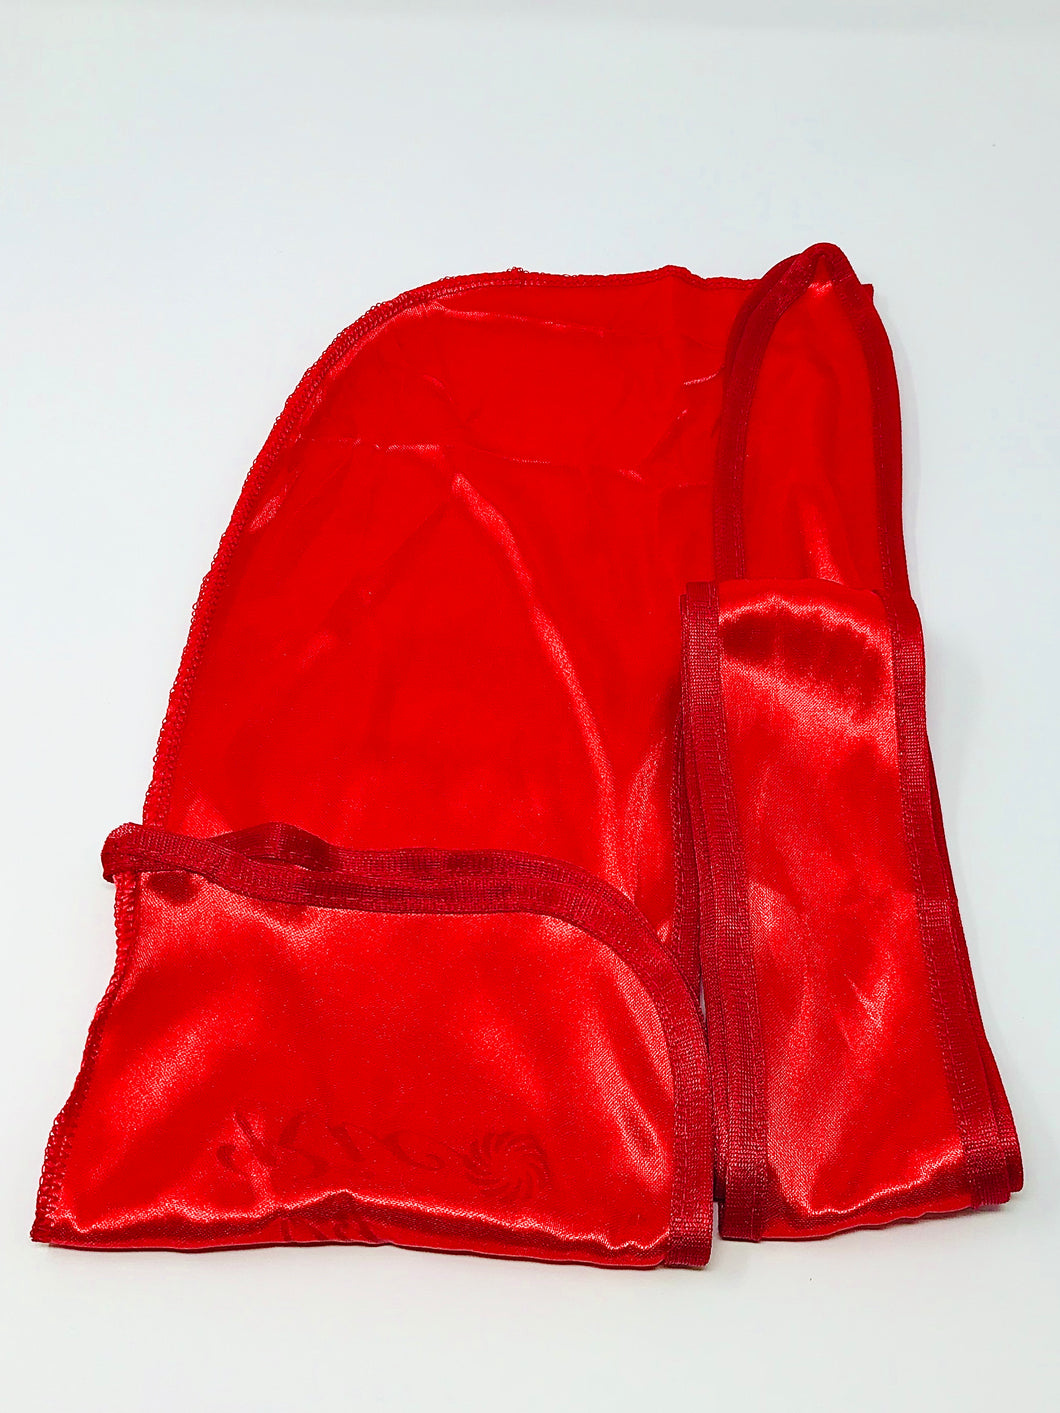 Rimix *PATENT PENDING* Silky Durag **Limited Edition - Red/Red Trim